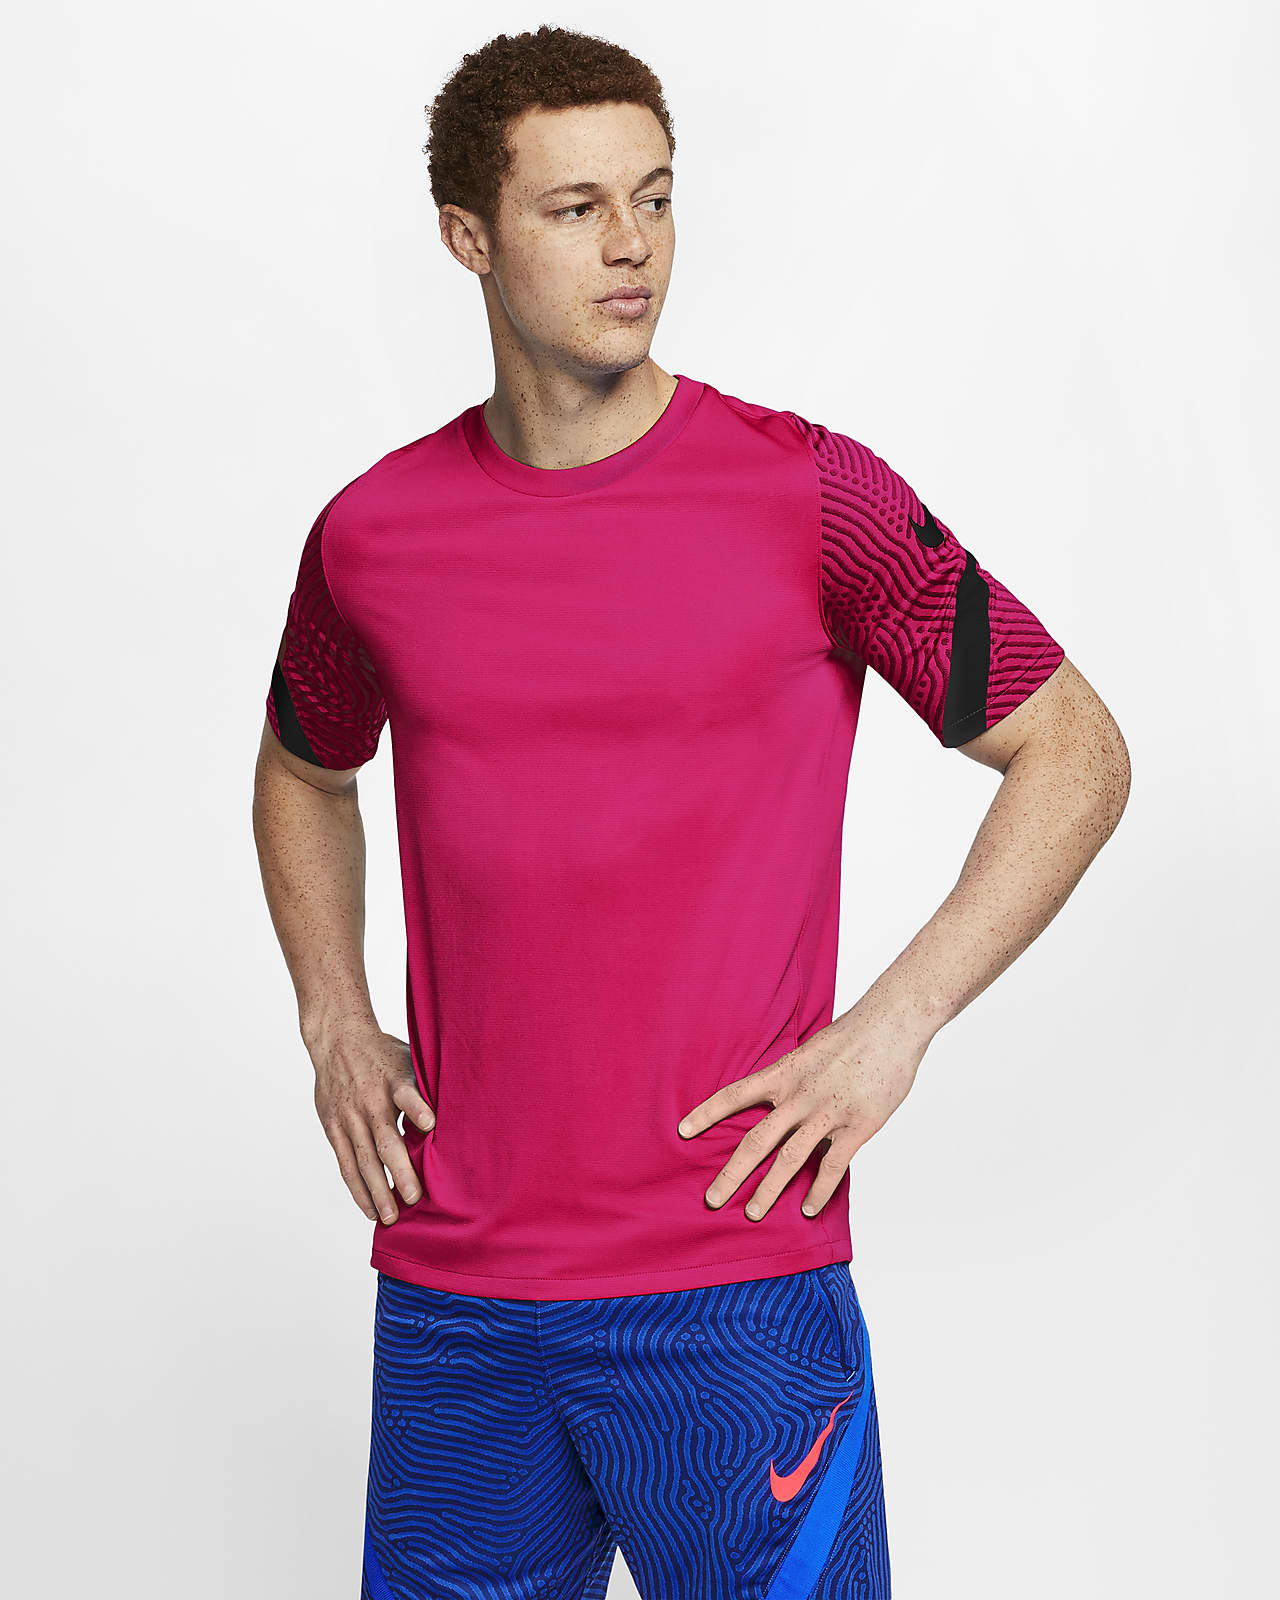 Nike Dri-FIT Strike Men's Short-Sleeve Football Top